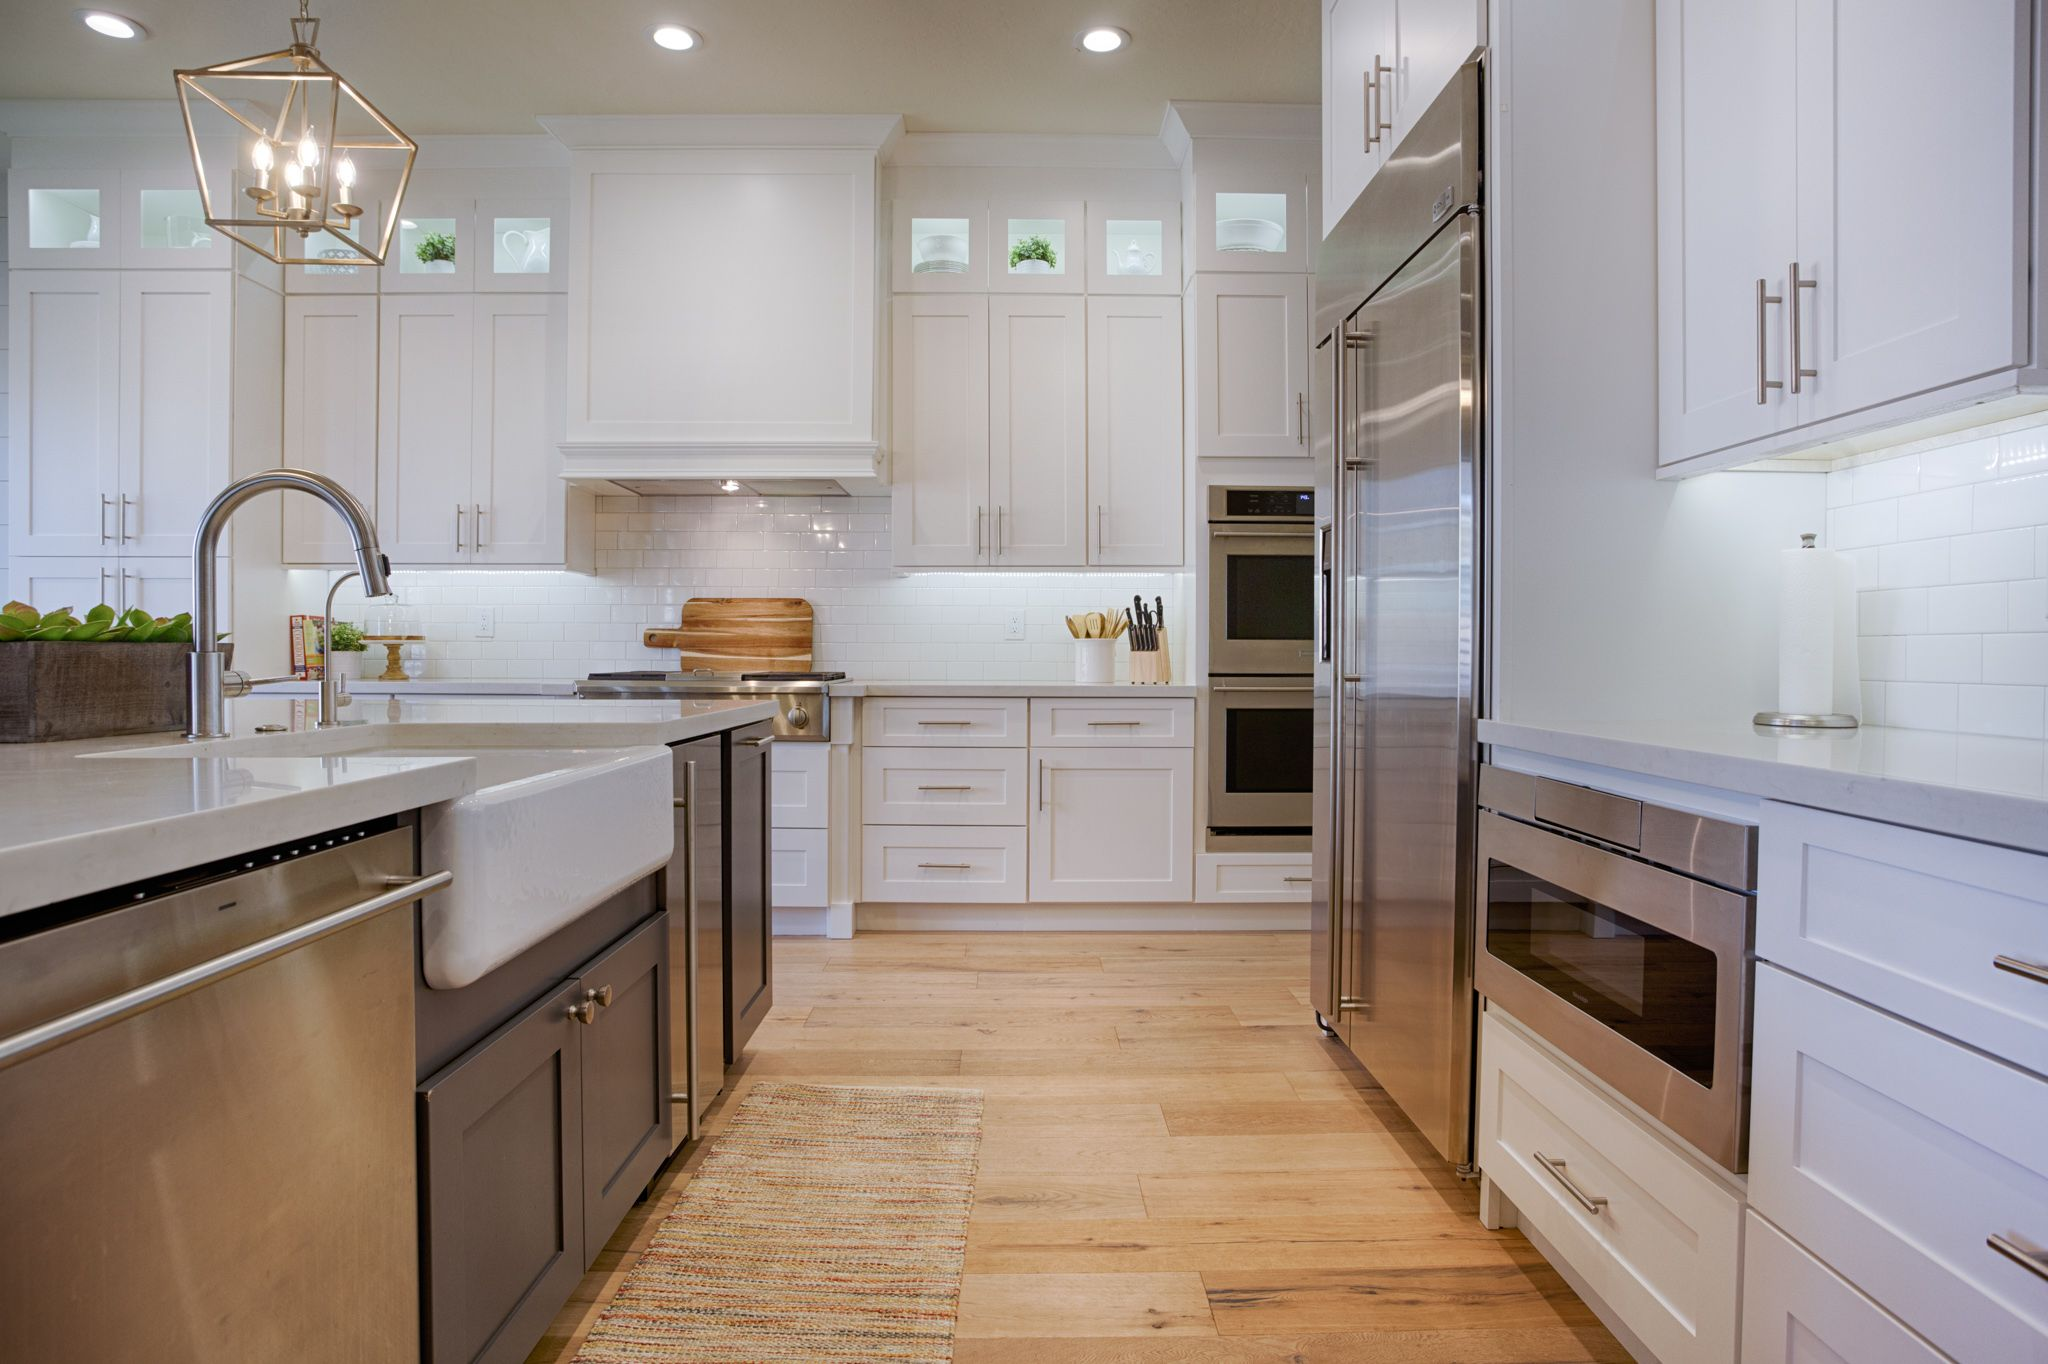 White Shaker Cabinets Gray Island And Light Wood Floorings